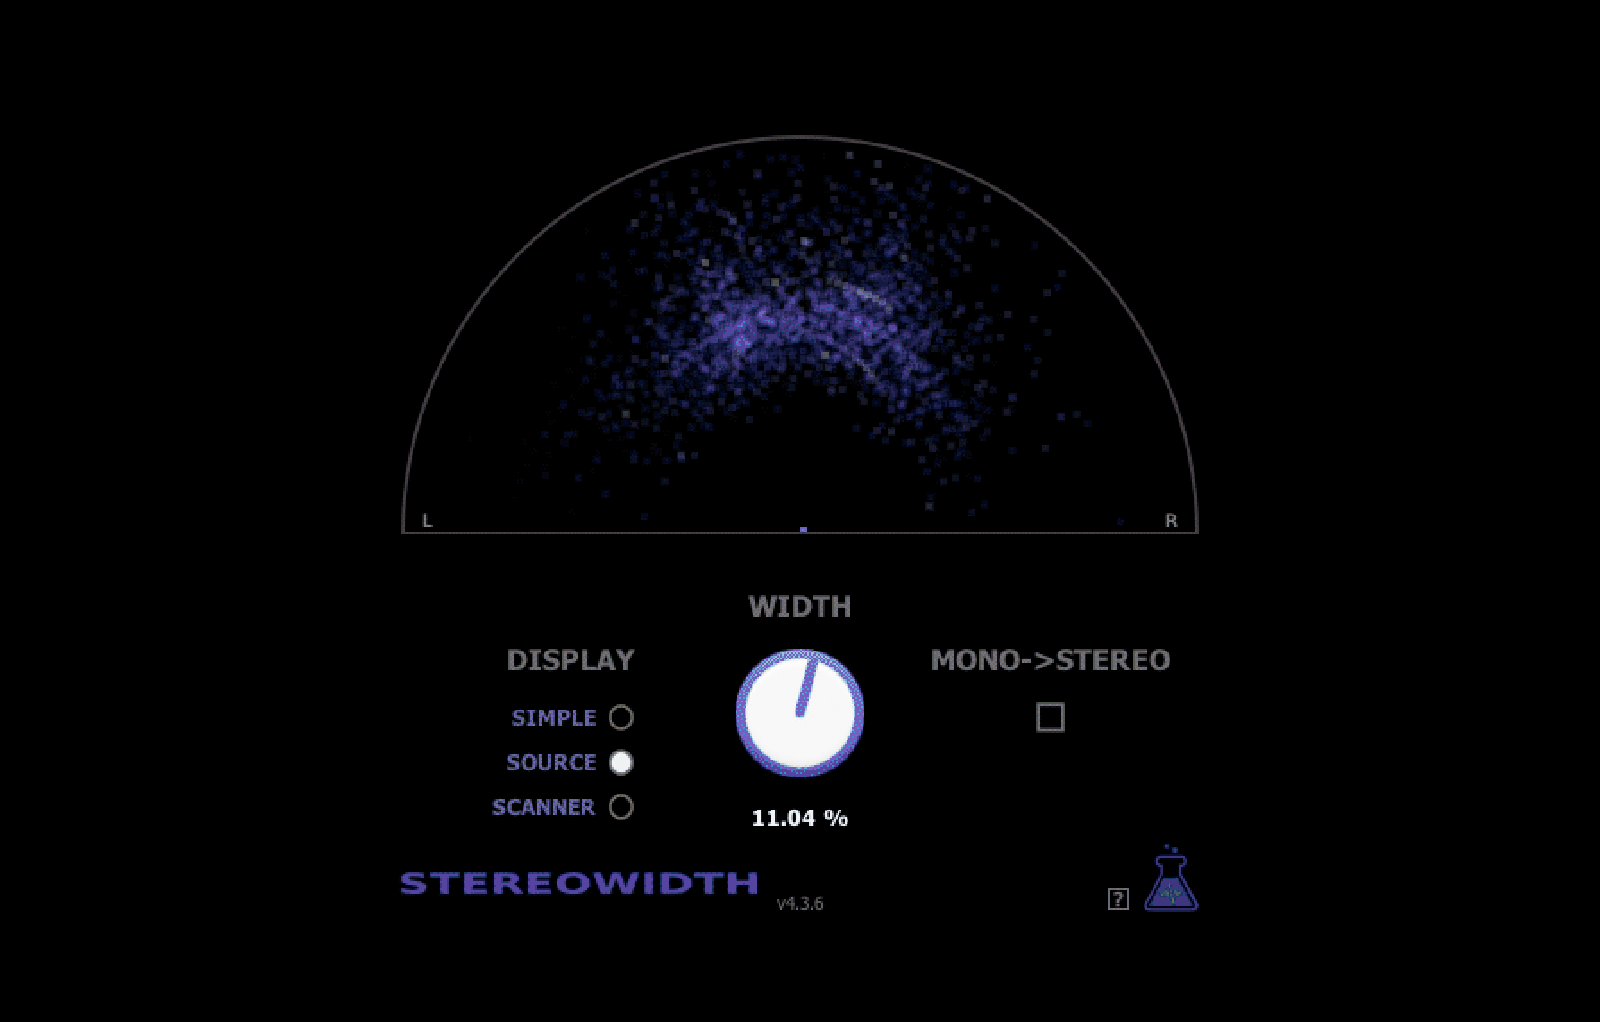 STEREOWIDTH